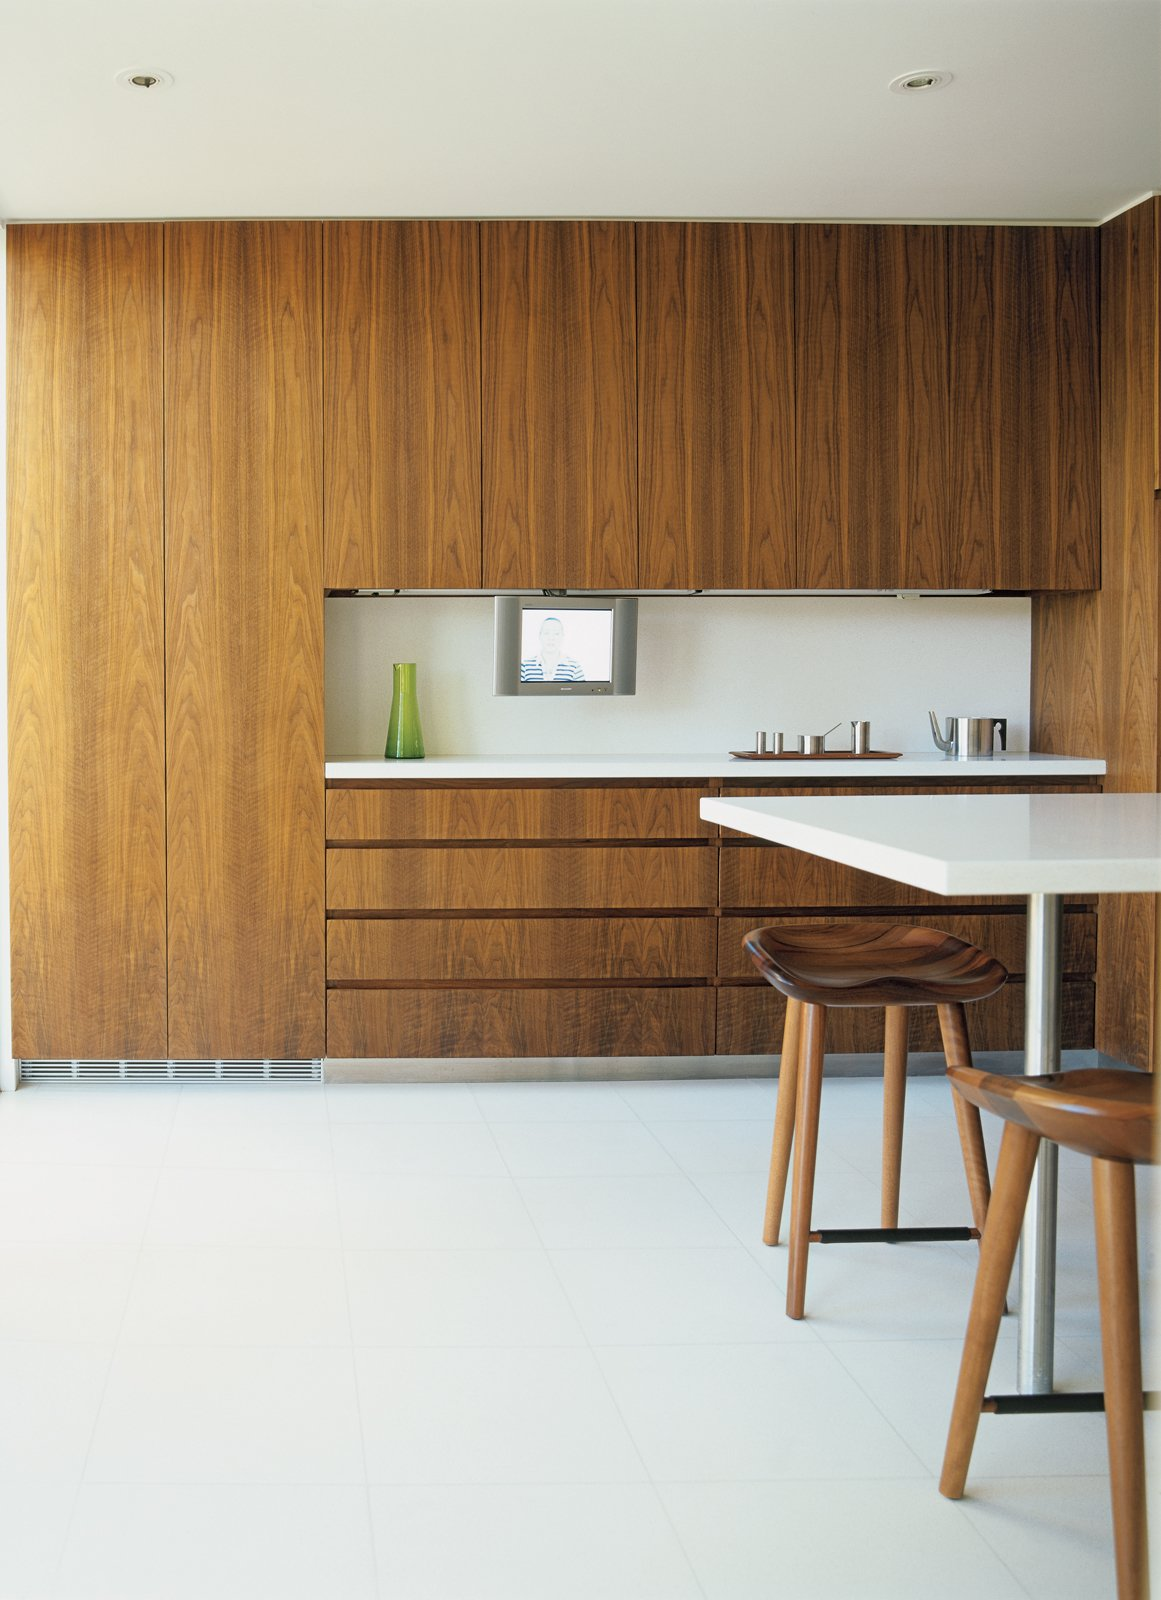 A 13-foot-long island in the kitchen, finished in the same white terrazzo as the floor, serves as an informal dining area. Bassam replicated the kitchen's walnut-veneered cabinetry in the study and master bedroom for continuity. Tagged: Kitchen, Engineered Quartz Counter, Porcelain Tile Floor, and Wood Cabinet.  Photo 4 of 6 in Pursuing Perfection